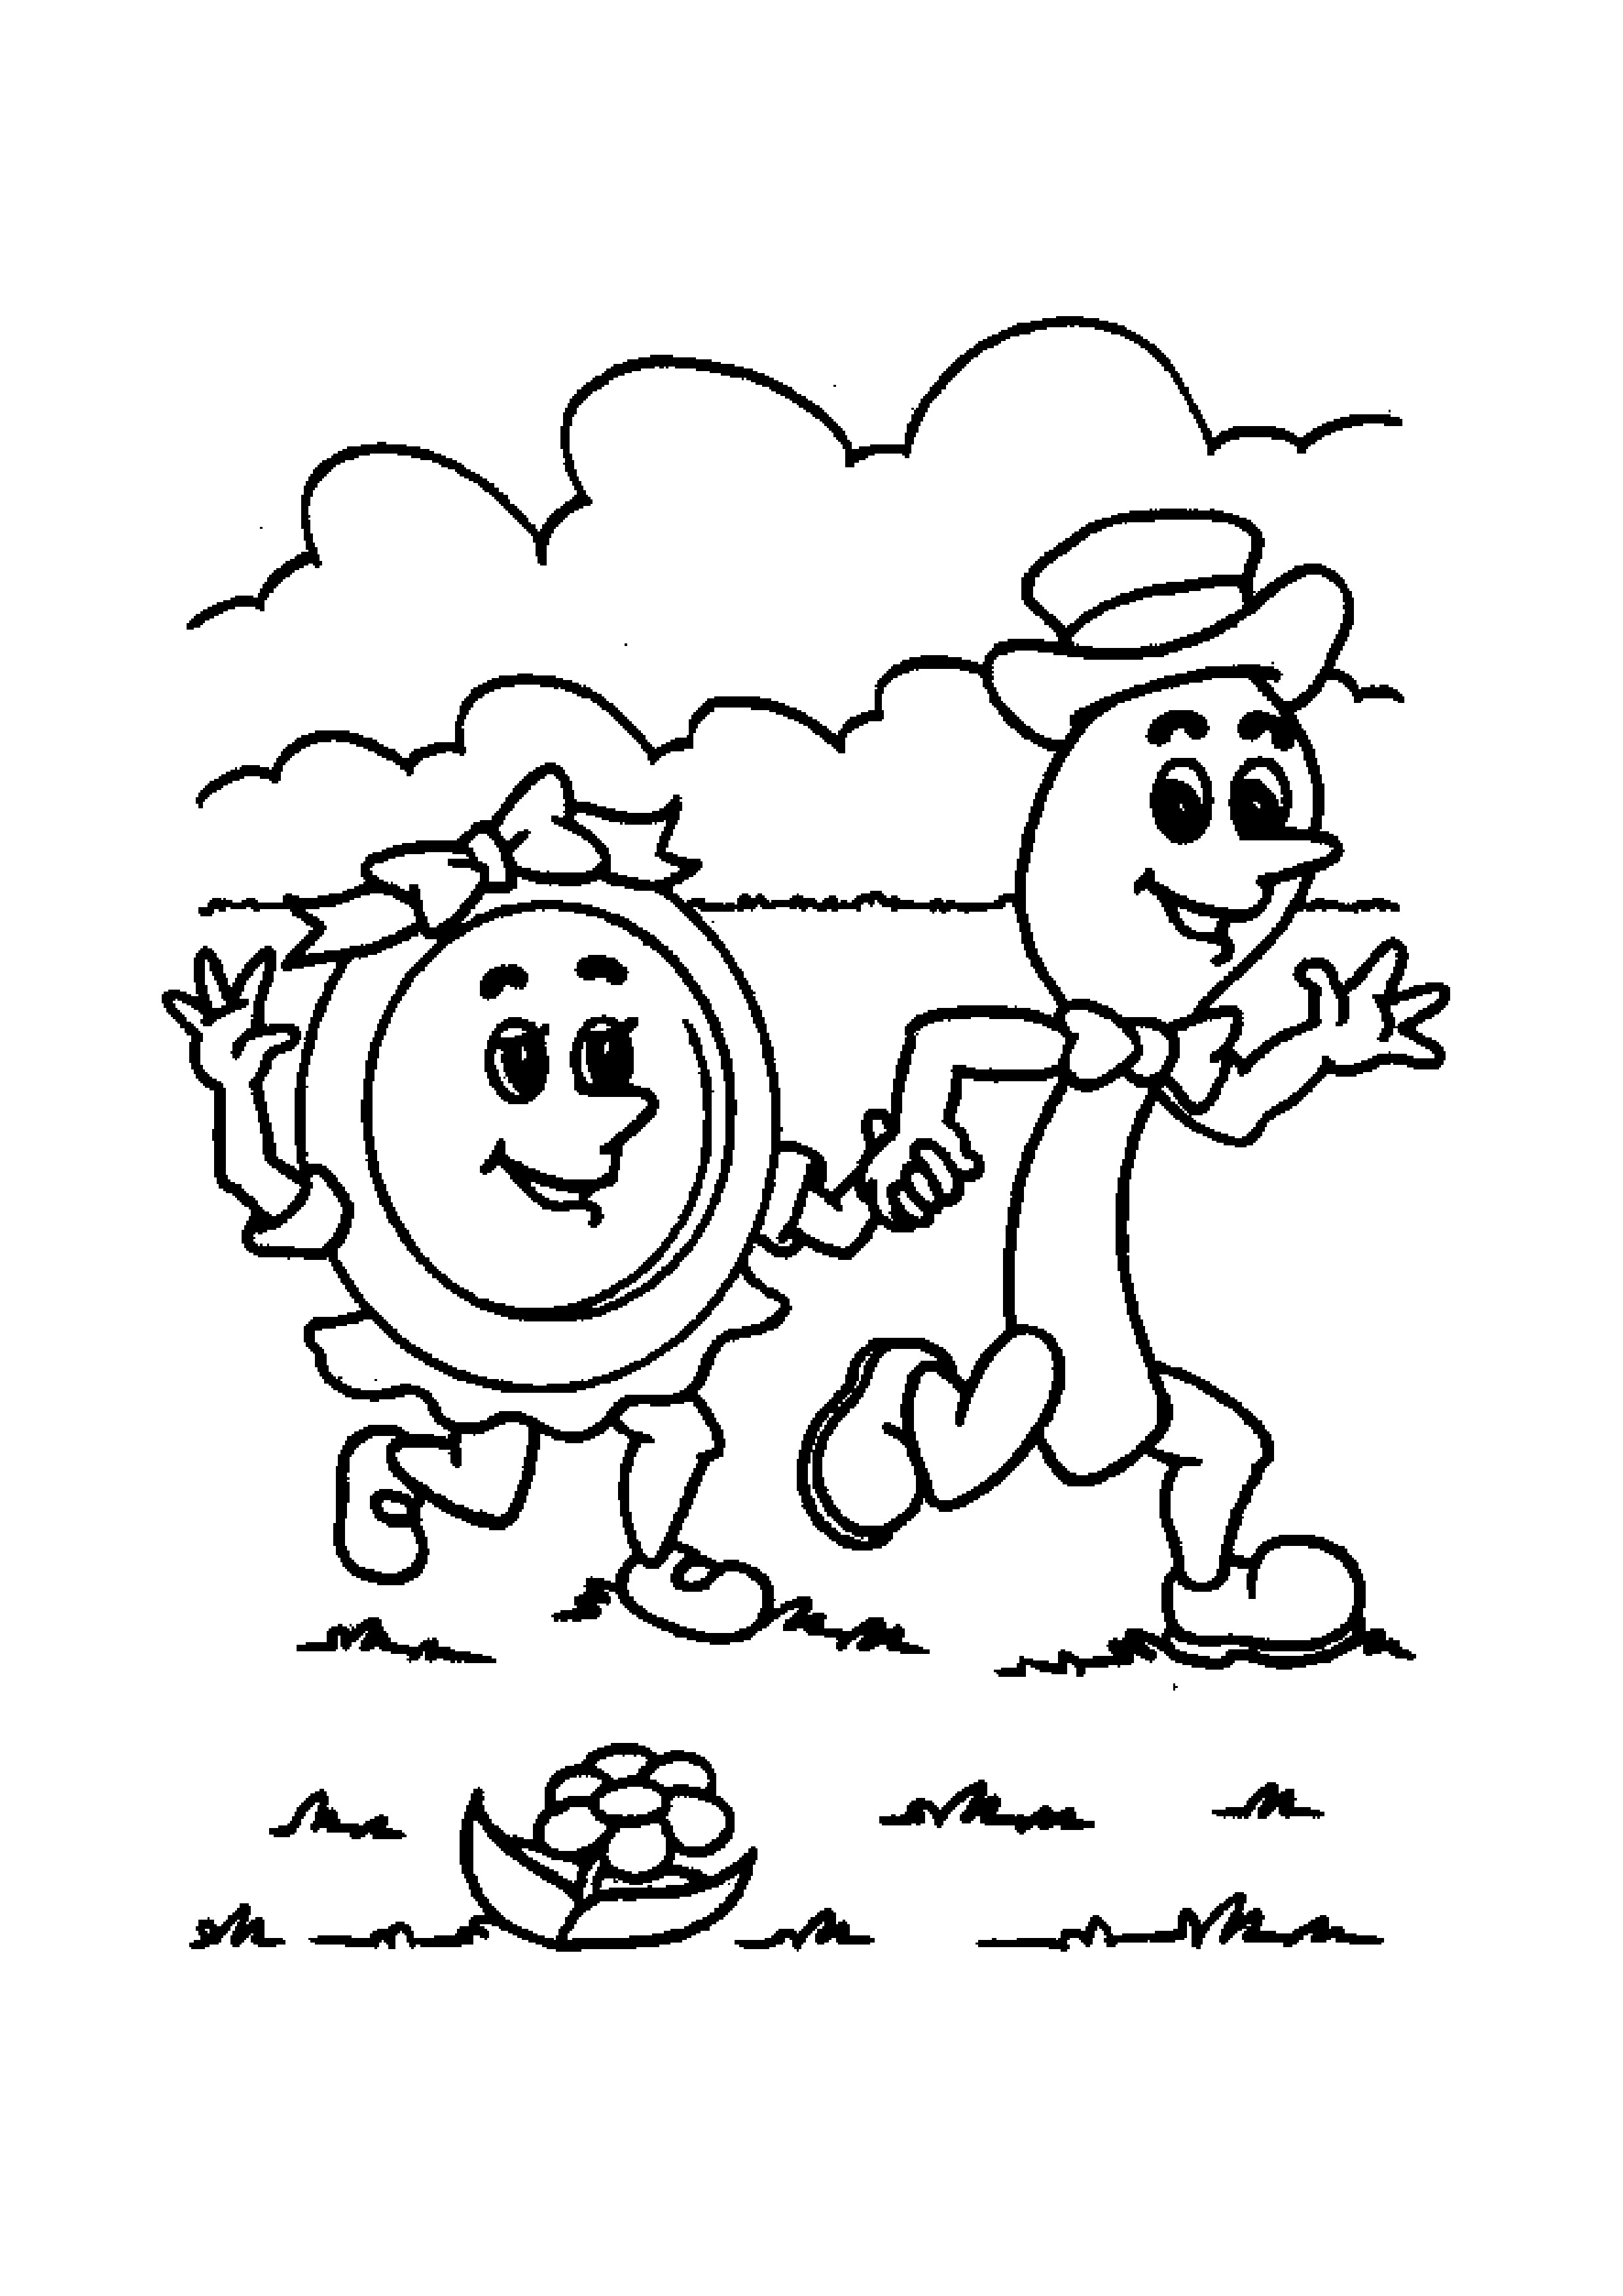 Mother Goose Nursery Rhymes Coloring Pages At Getcolorings